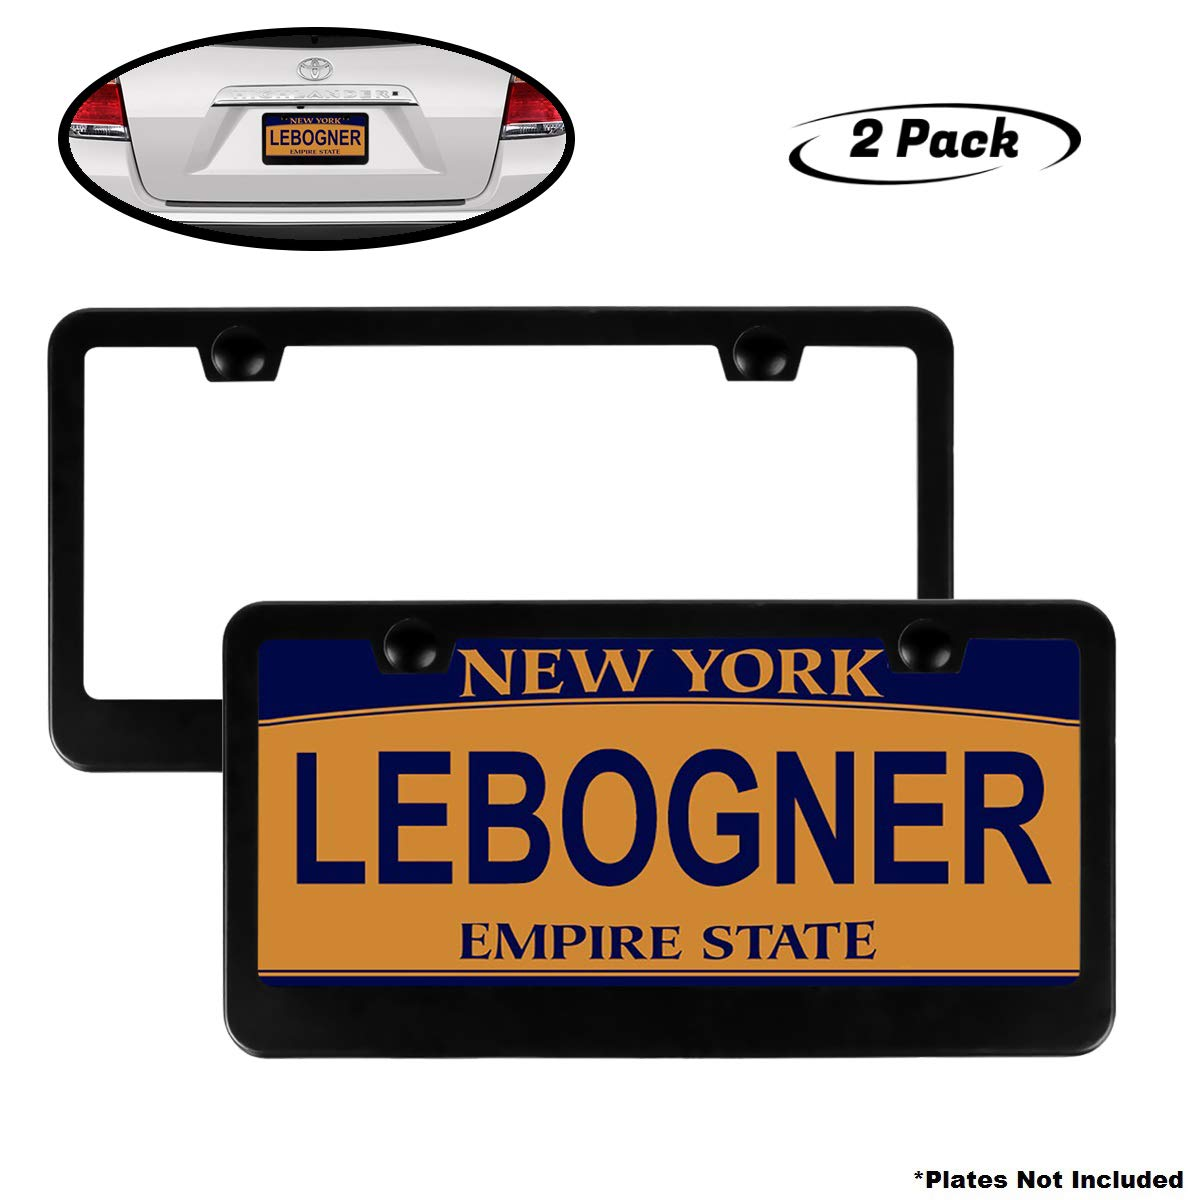 Will Fit Standard US Plates lebogner Car License Plate Frames 2 Hole Stainless Steel Black Unbreakable Frames to Protect Plates 2 Pack Matte Aluminum Auto Plate Frames Mounting Hardware Included